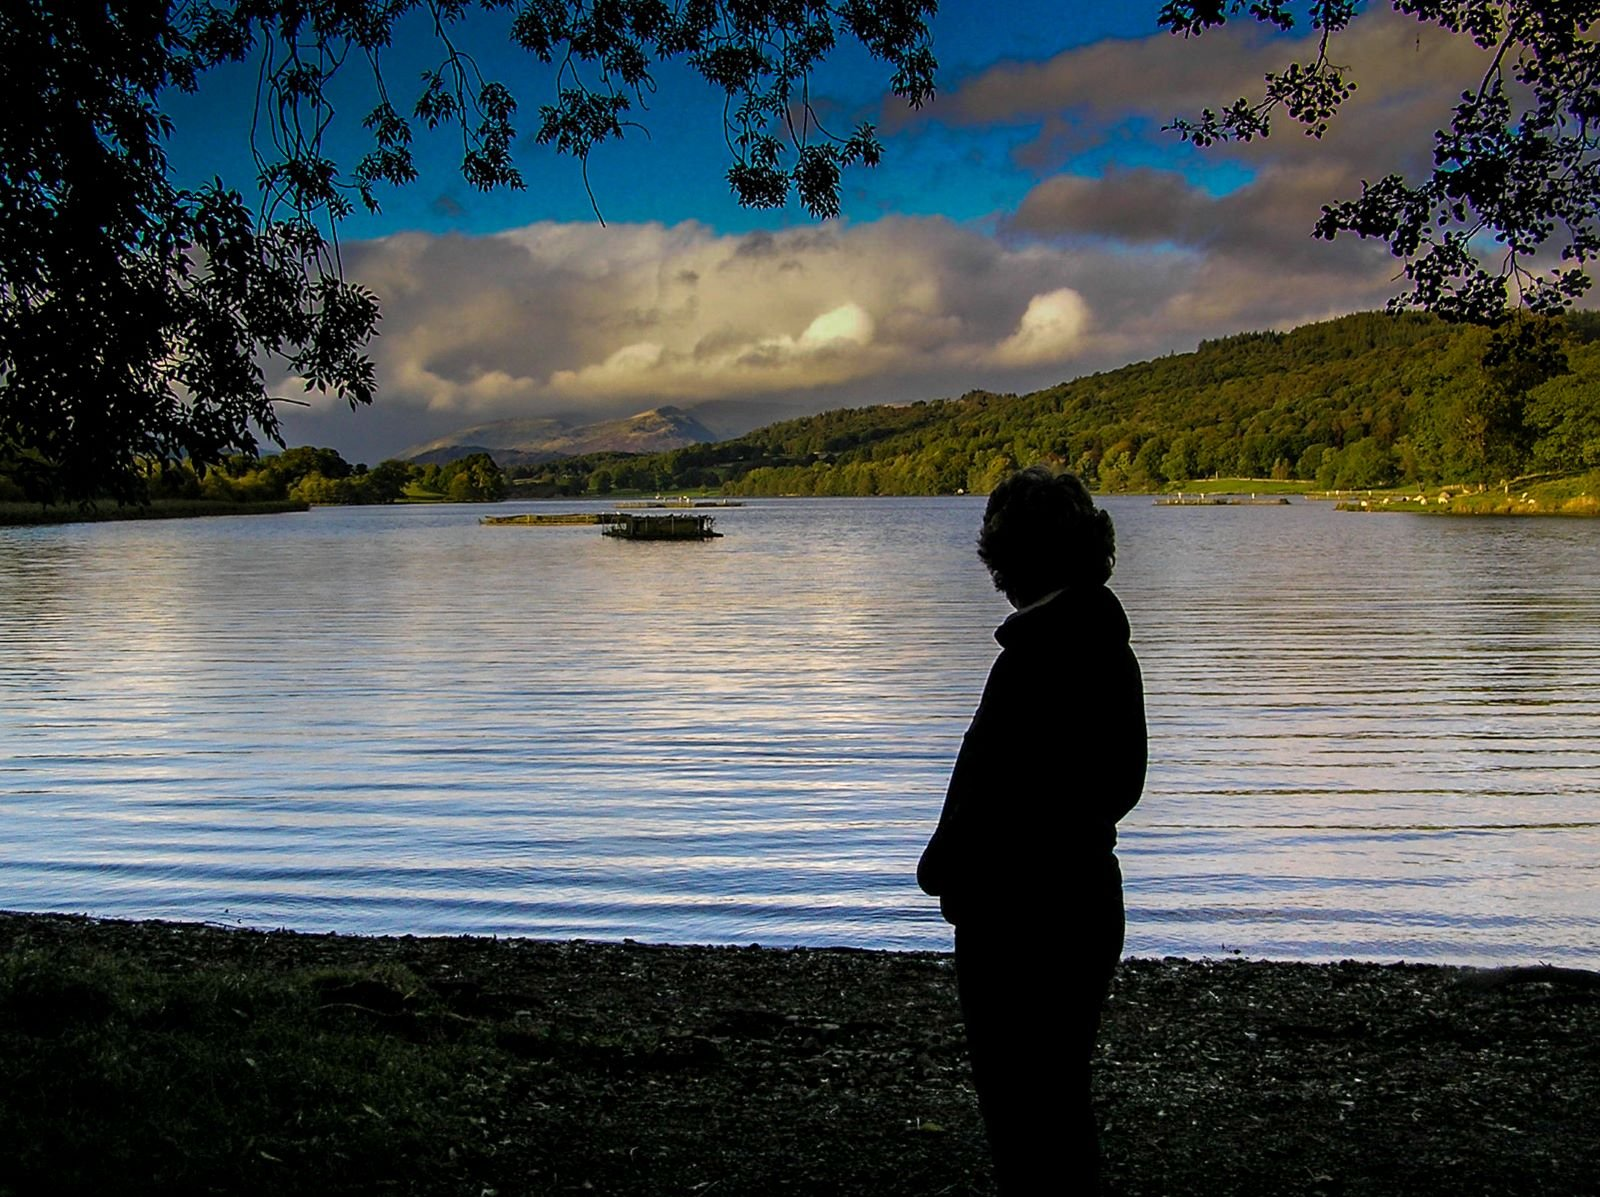 =10th 252 votes - Windermere